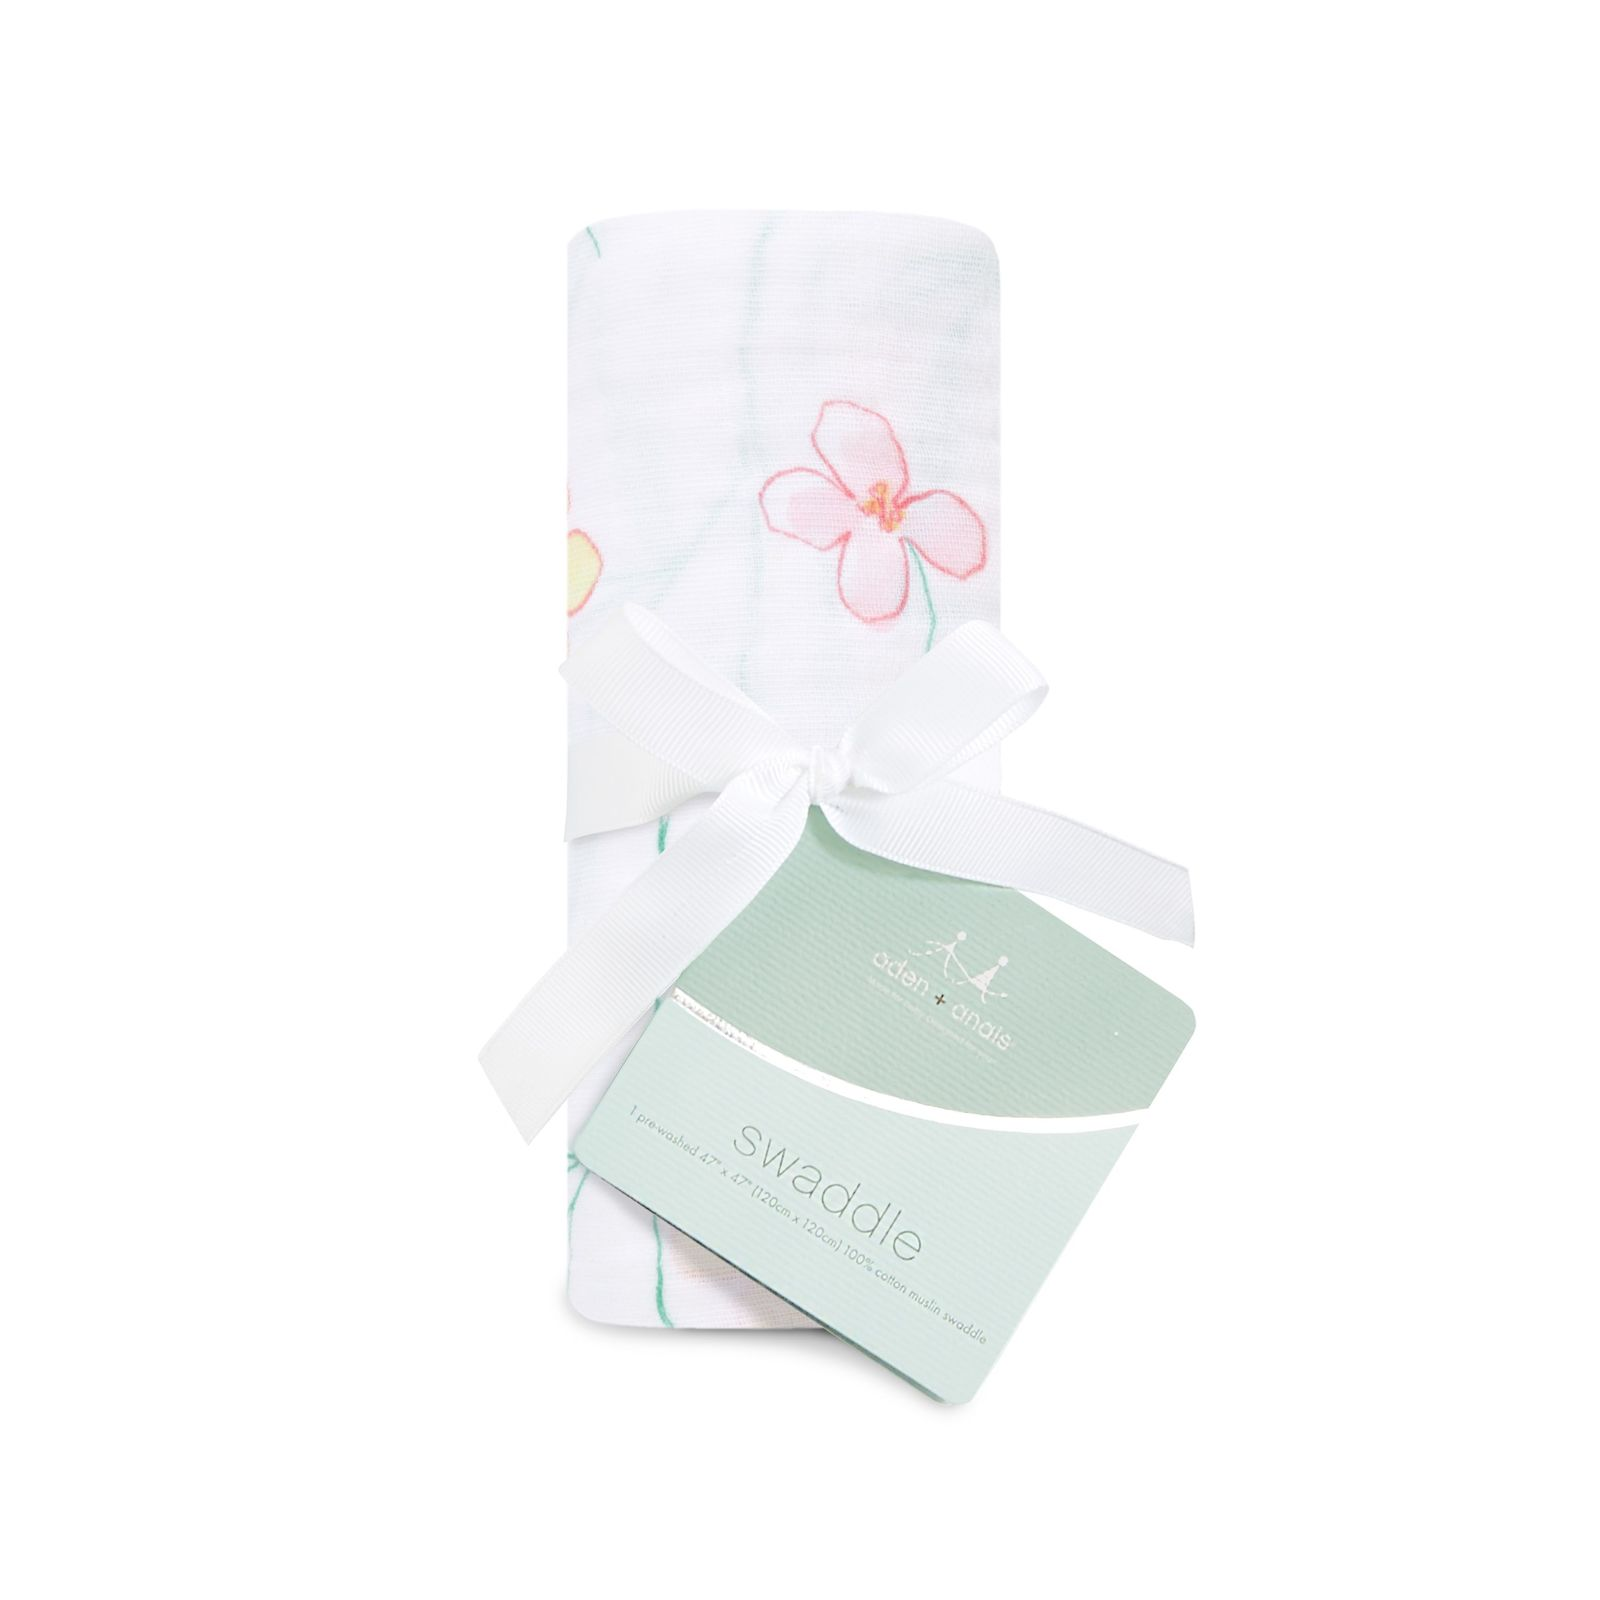 Aden + Anais: Classic Swaddle - Forest Fantasy - Flowers (Single) image